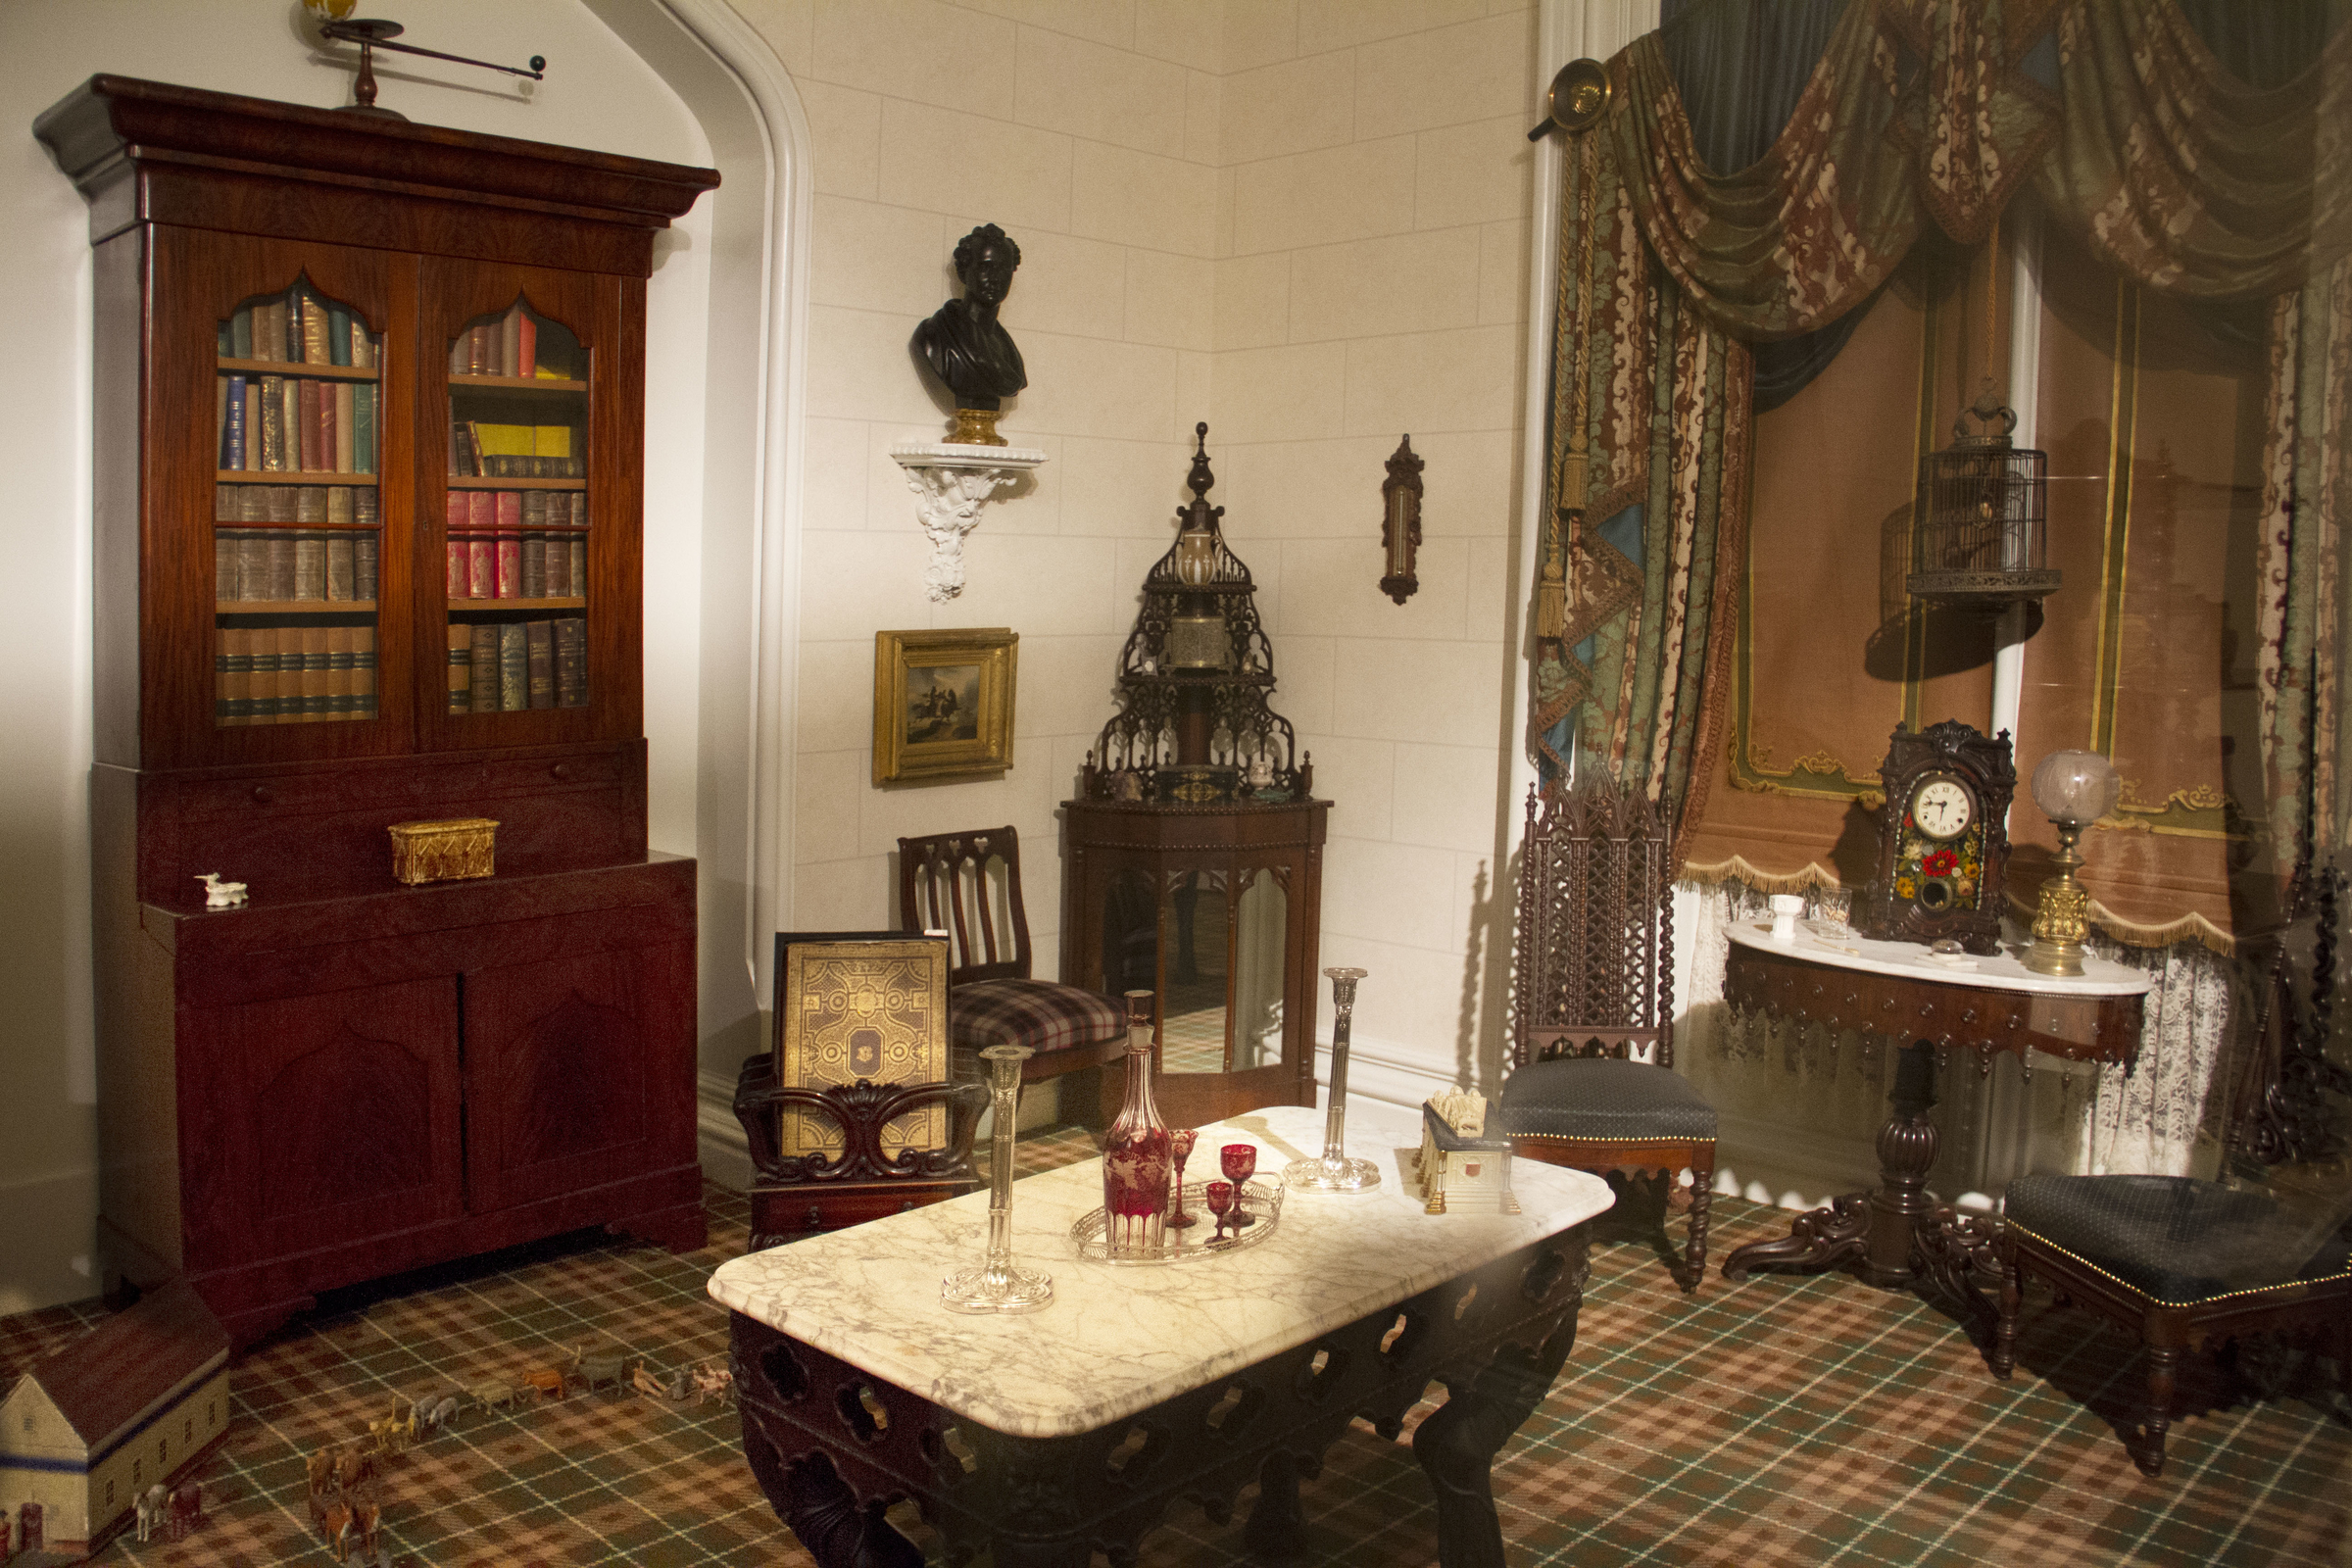 Period rooms get a makeover at Brooklyn Museum